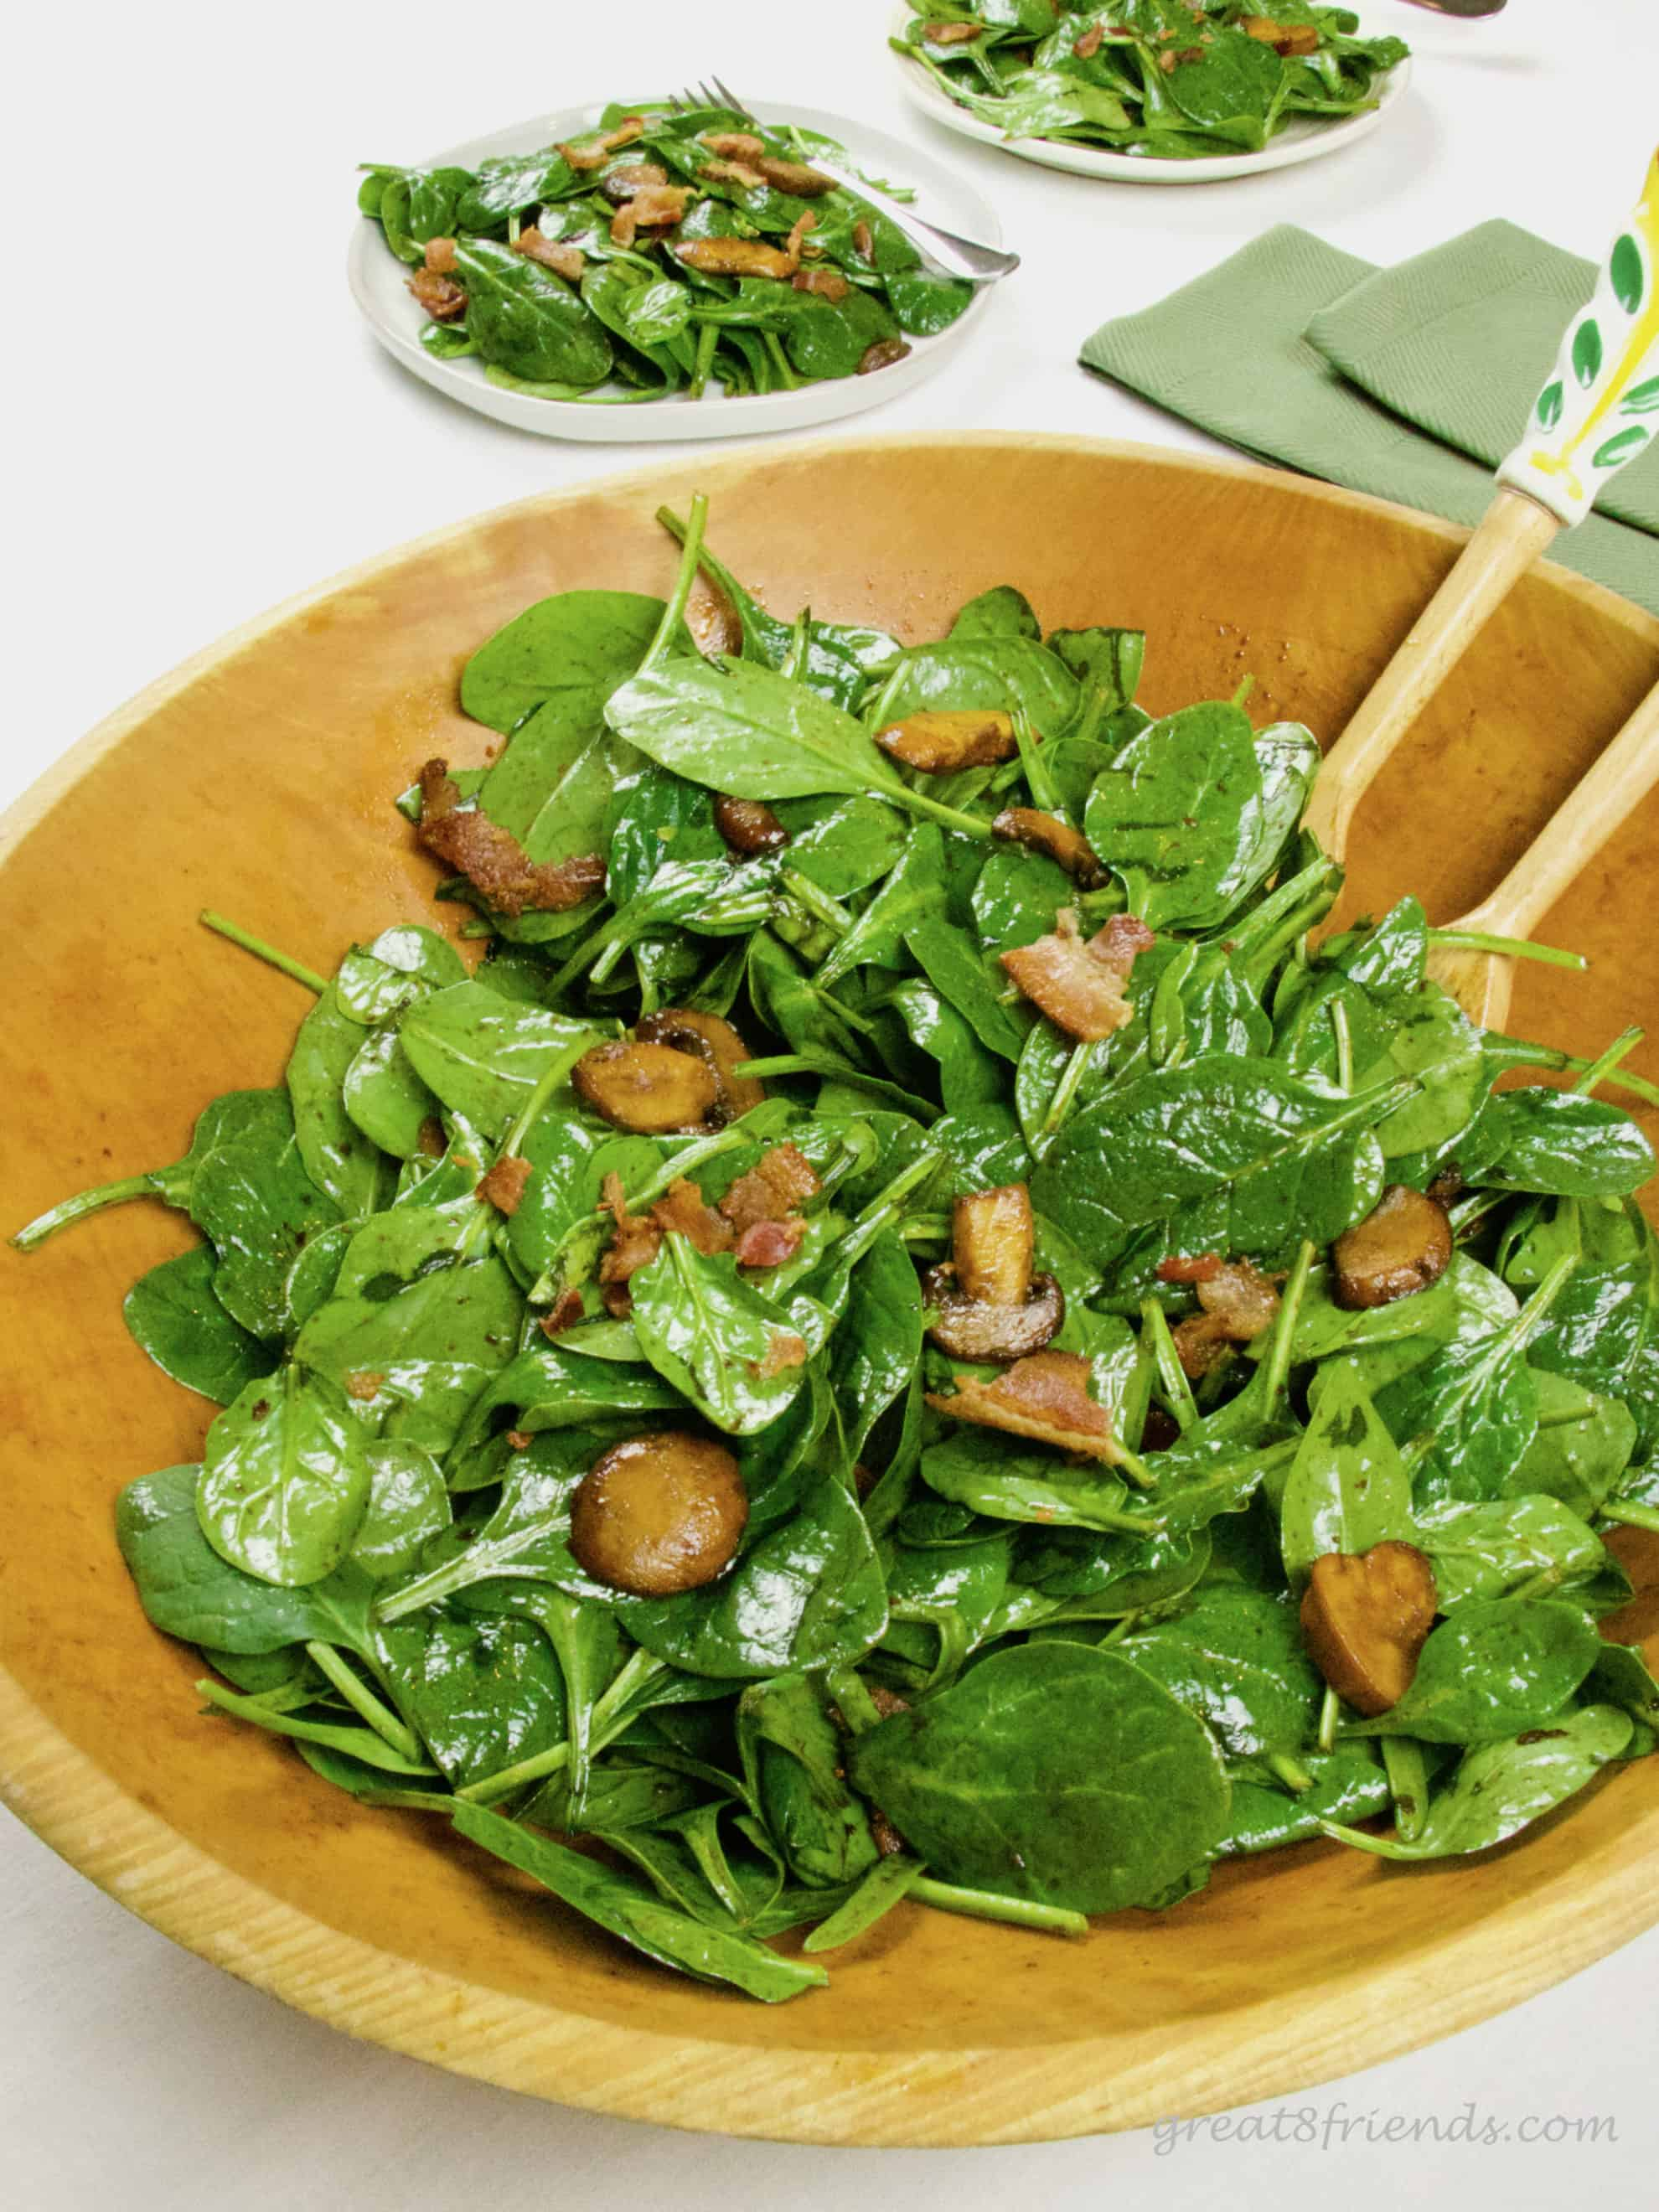 This Warm Mushroom Bacon Spinach Salad is the perfect beginning for your dinner. You can even make the dressing ahead of time!